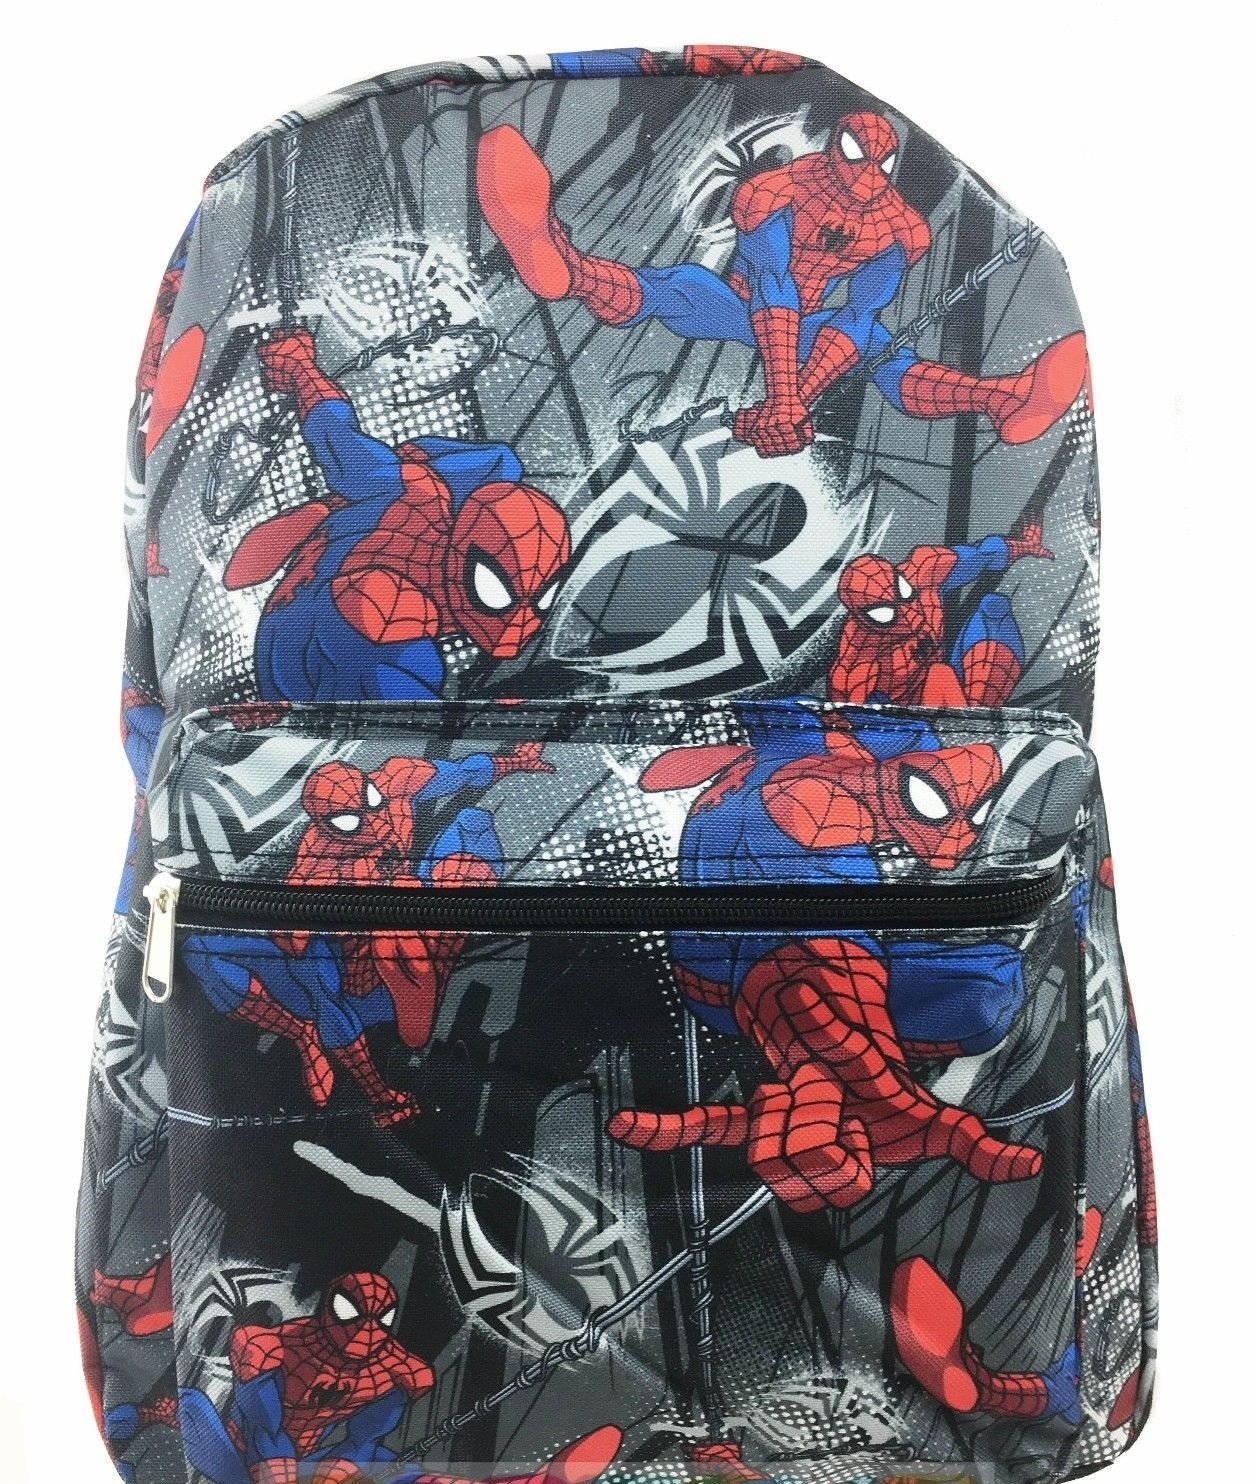 Spiderman Black Allover Print 16